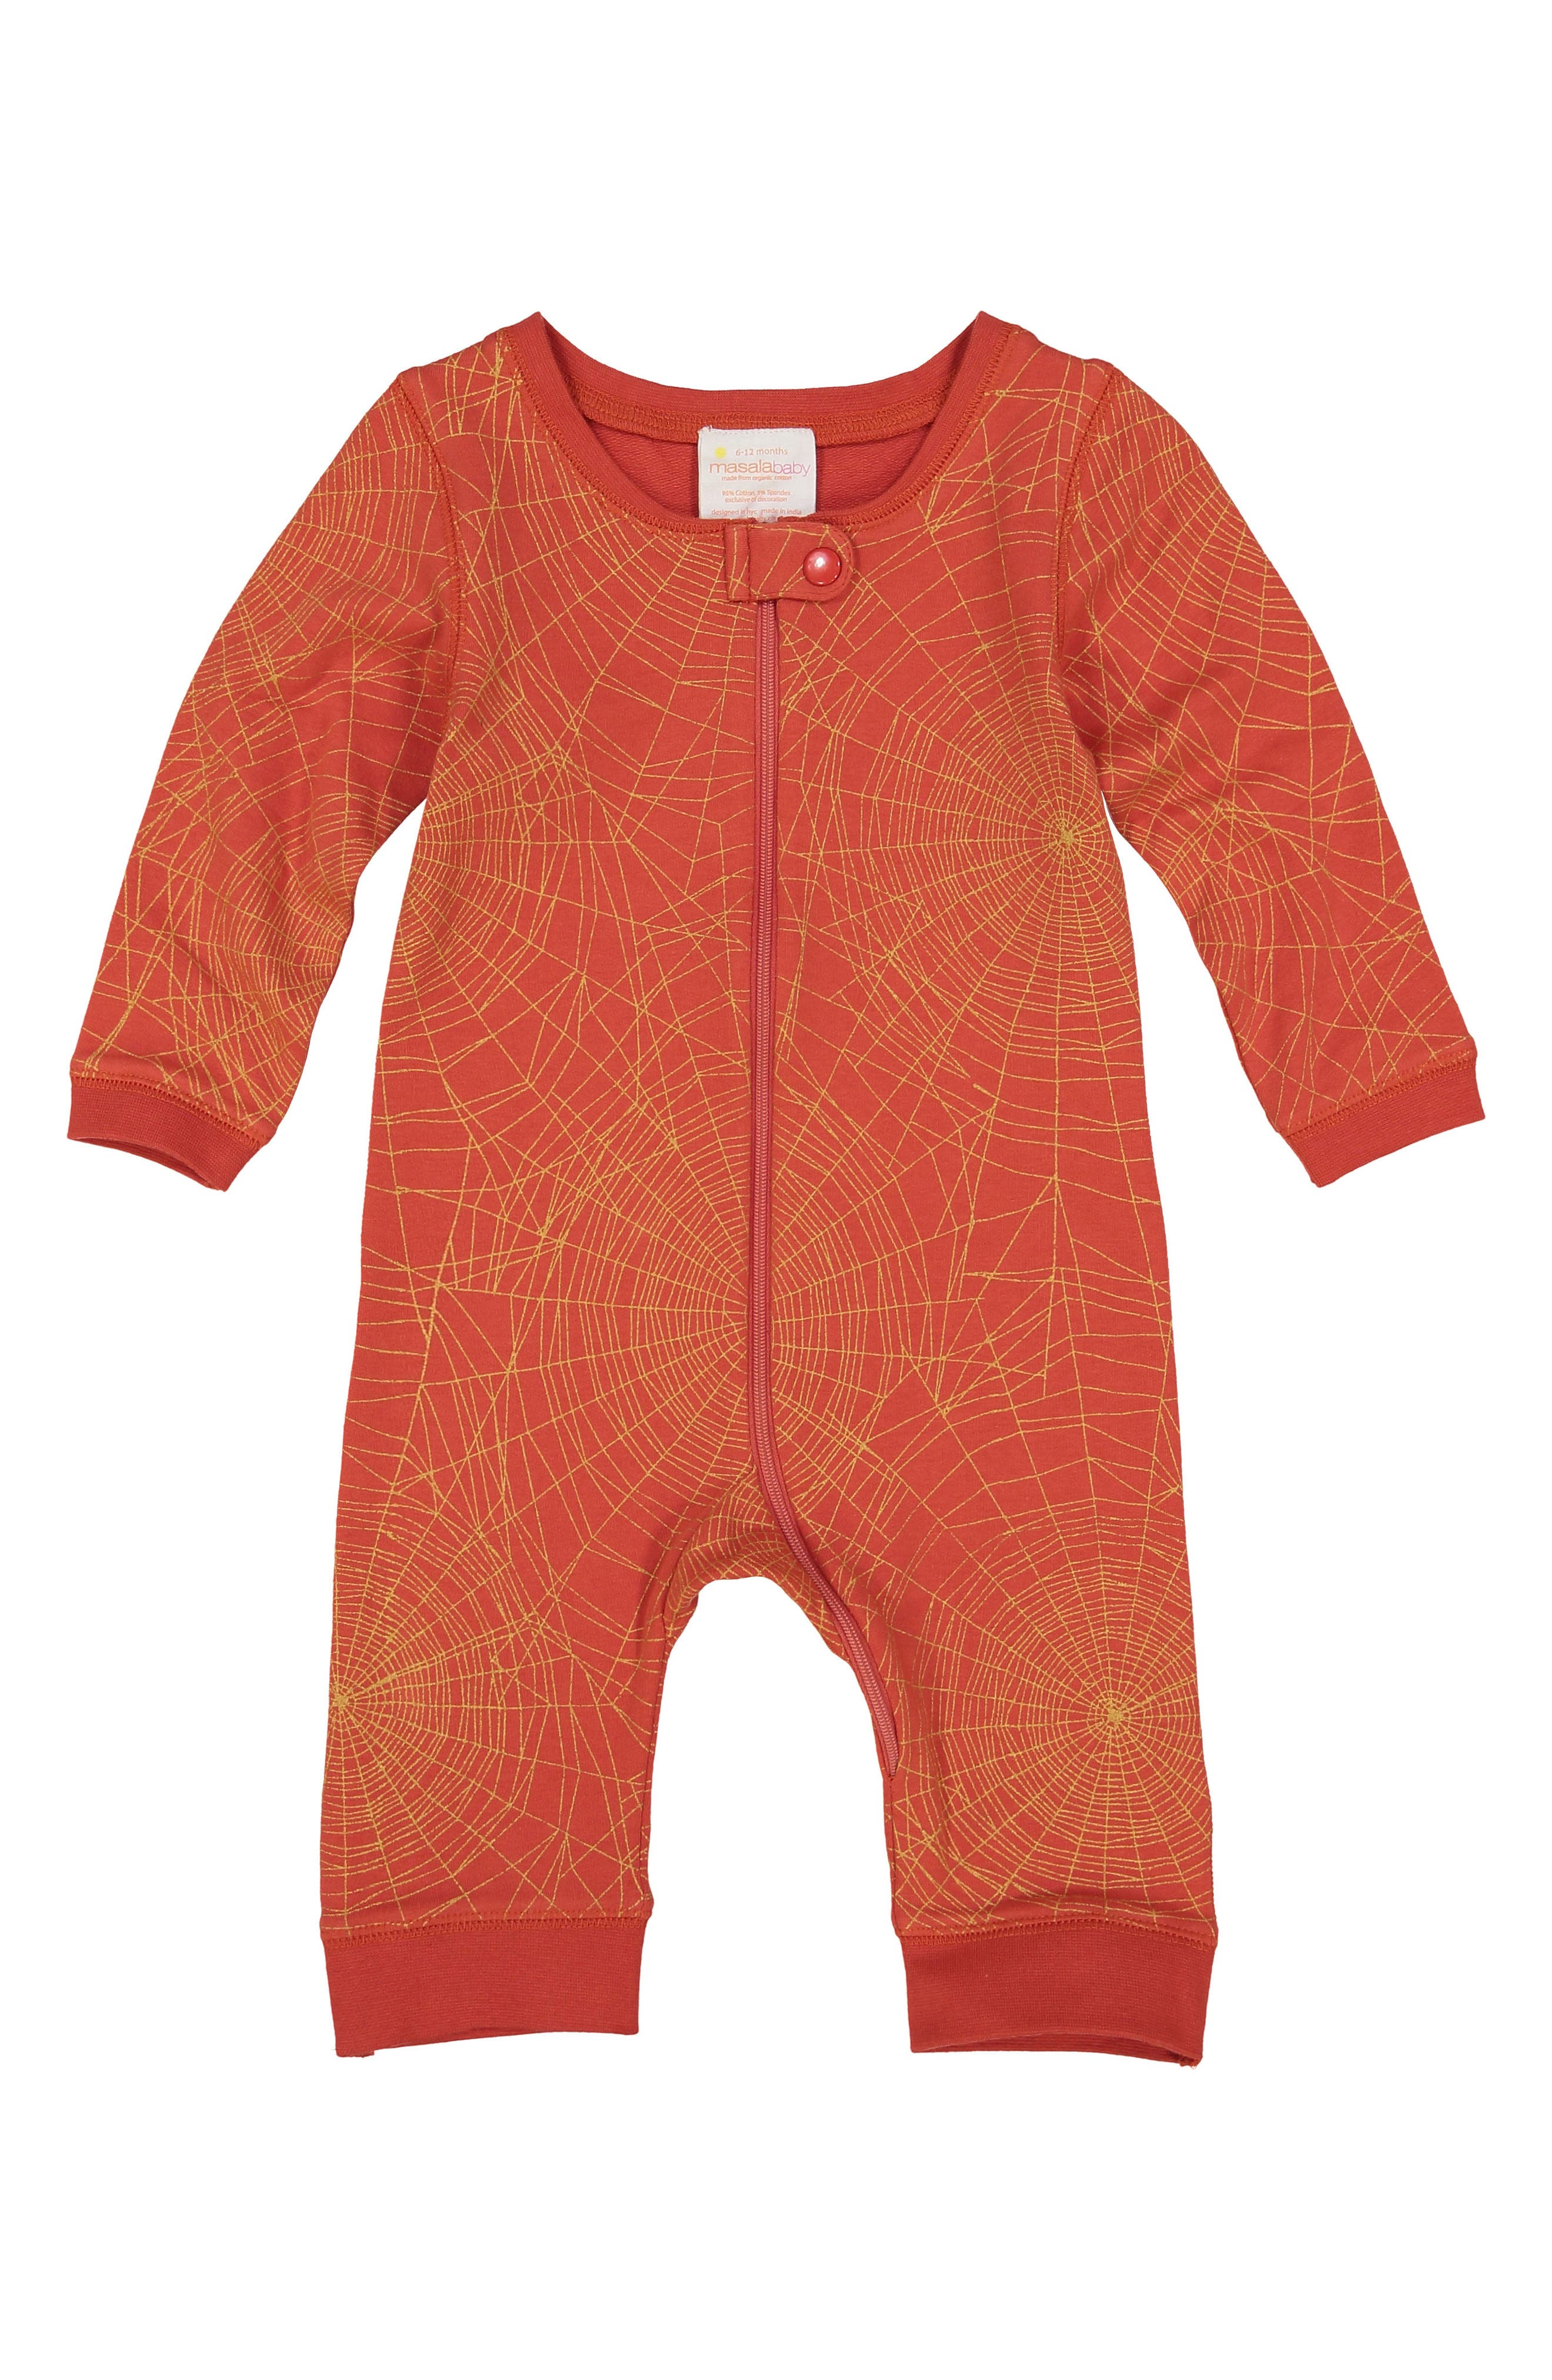 Golden Web Stretch Organic Cotton One-Piece,                         Main,                         color, RED